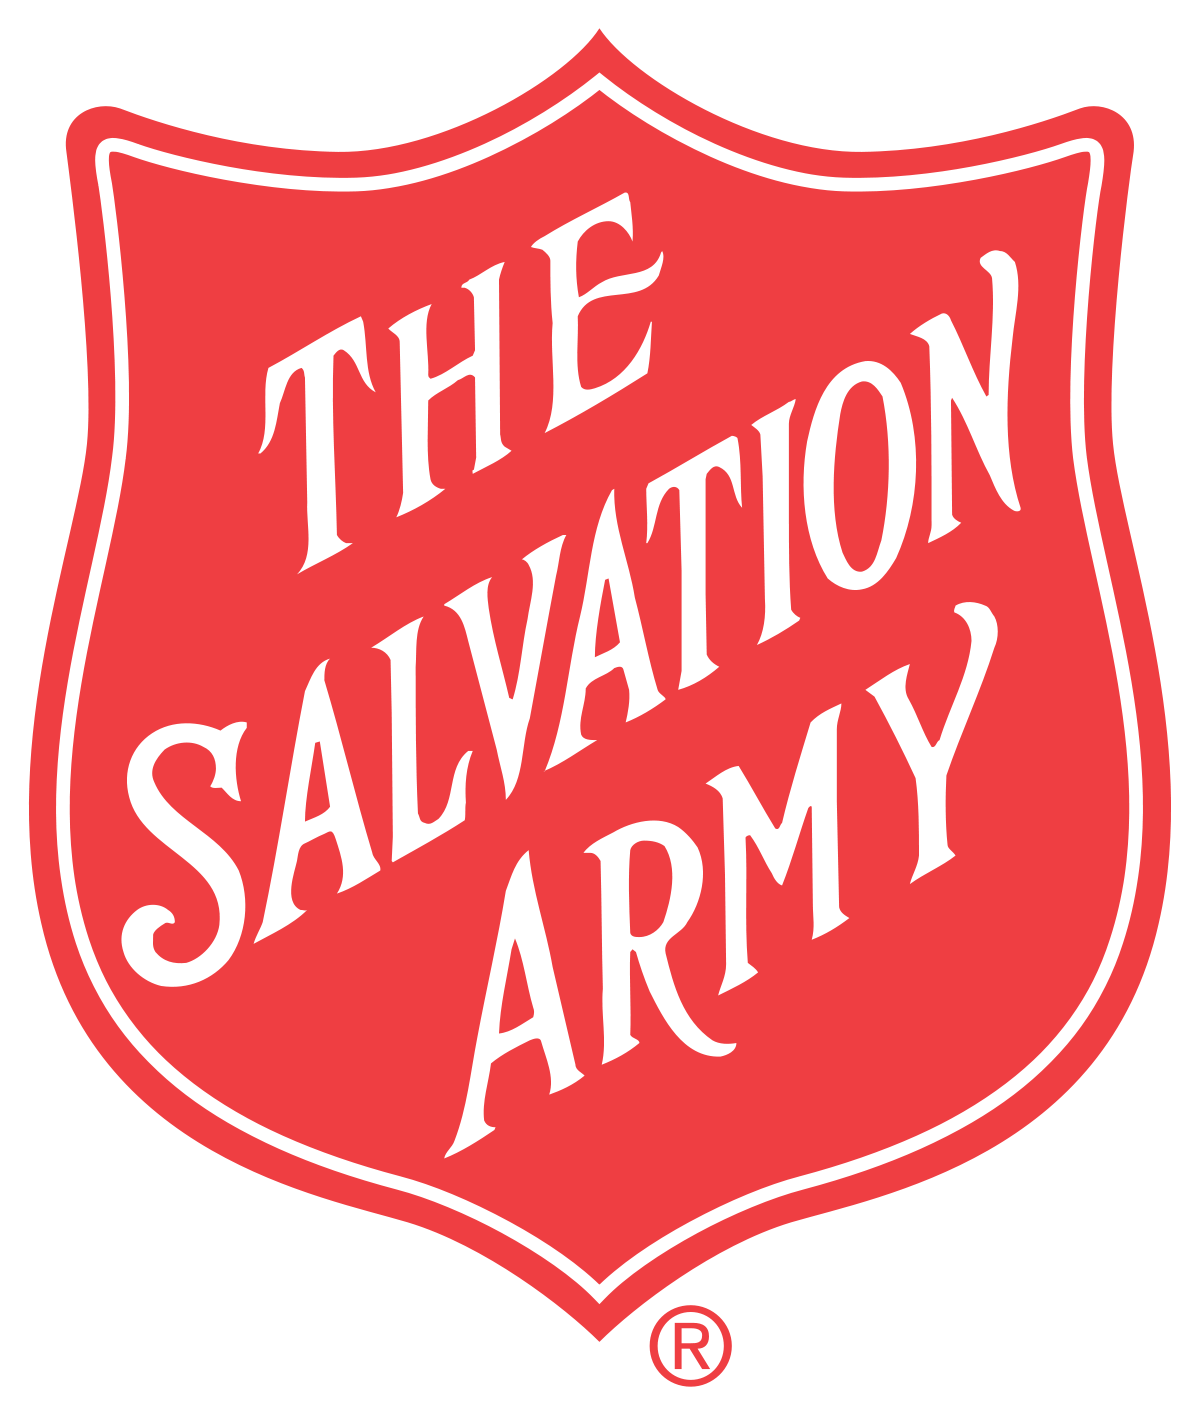 Army clipart army singapore. The salvation wikipedia